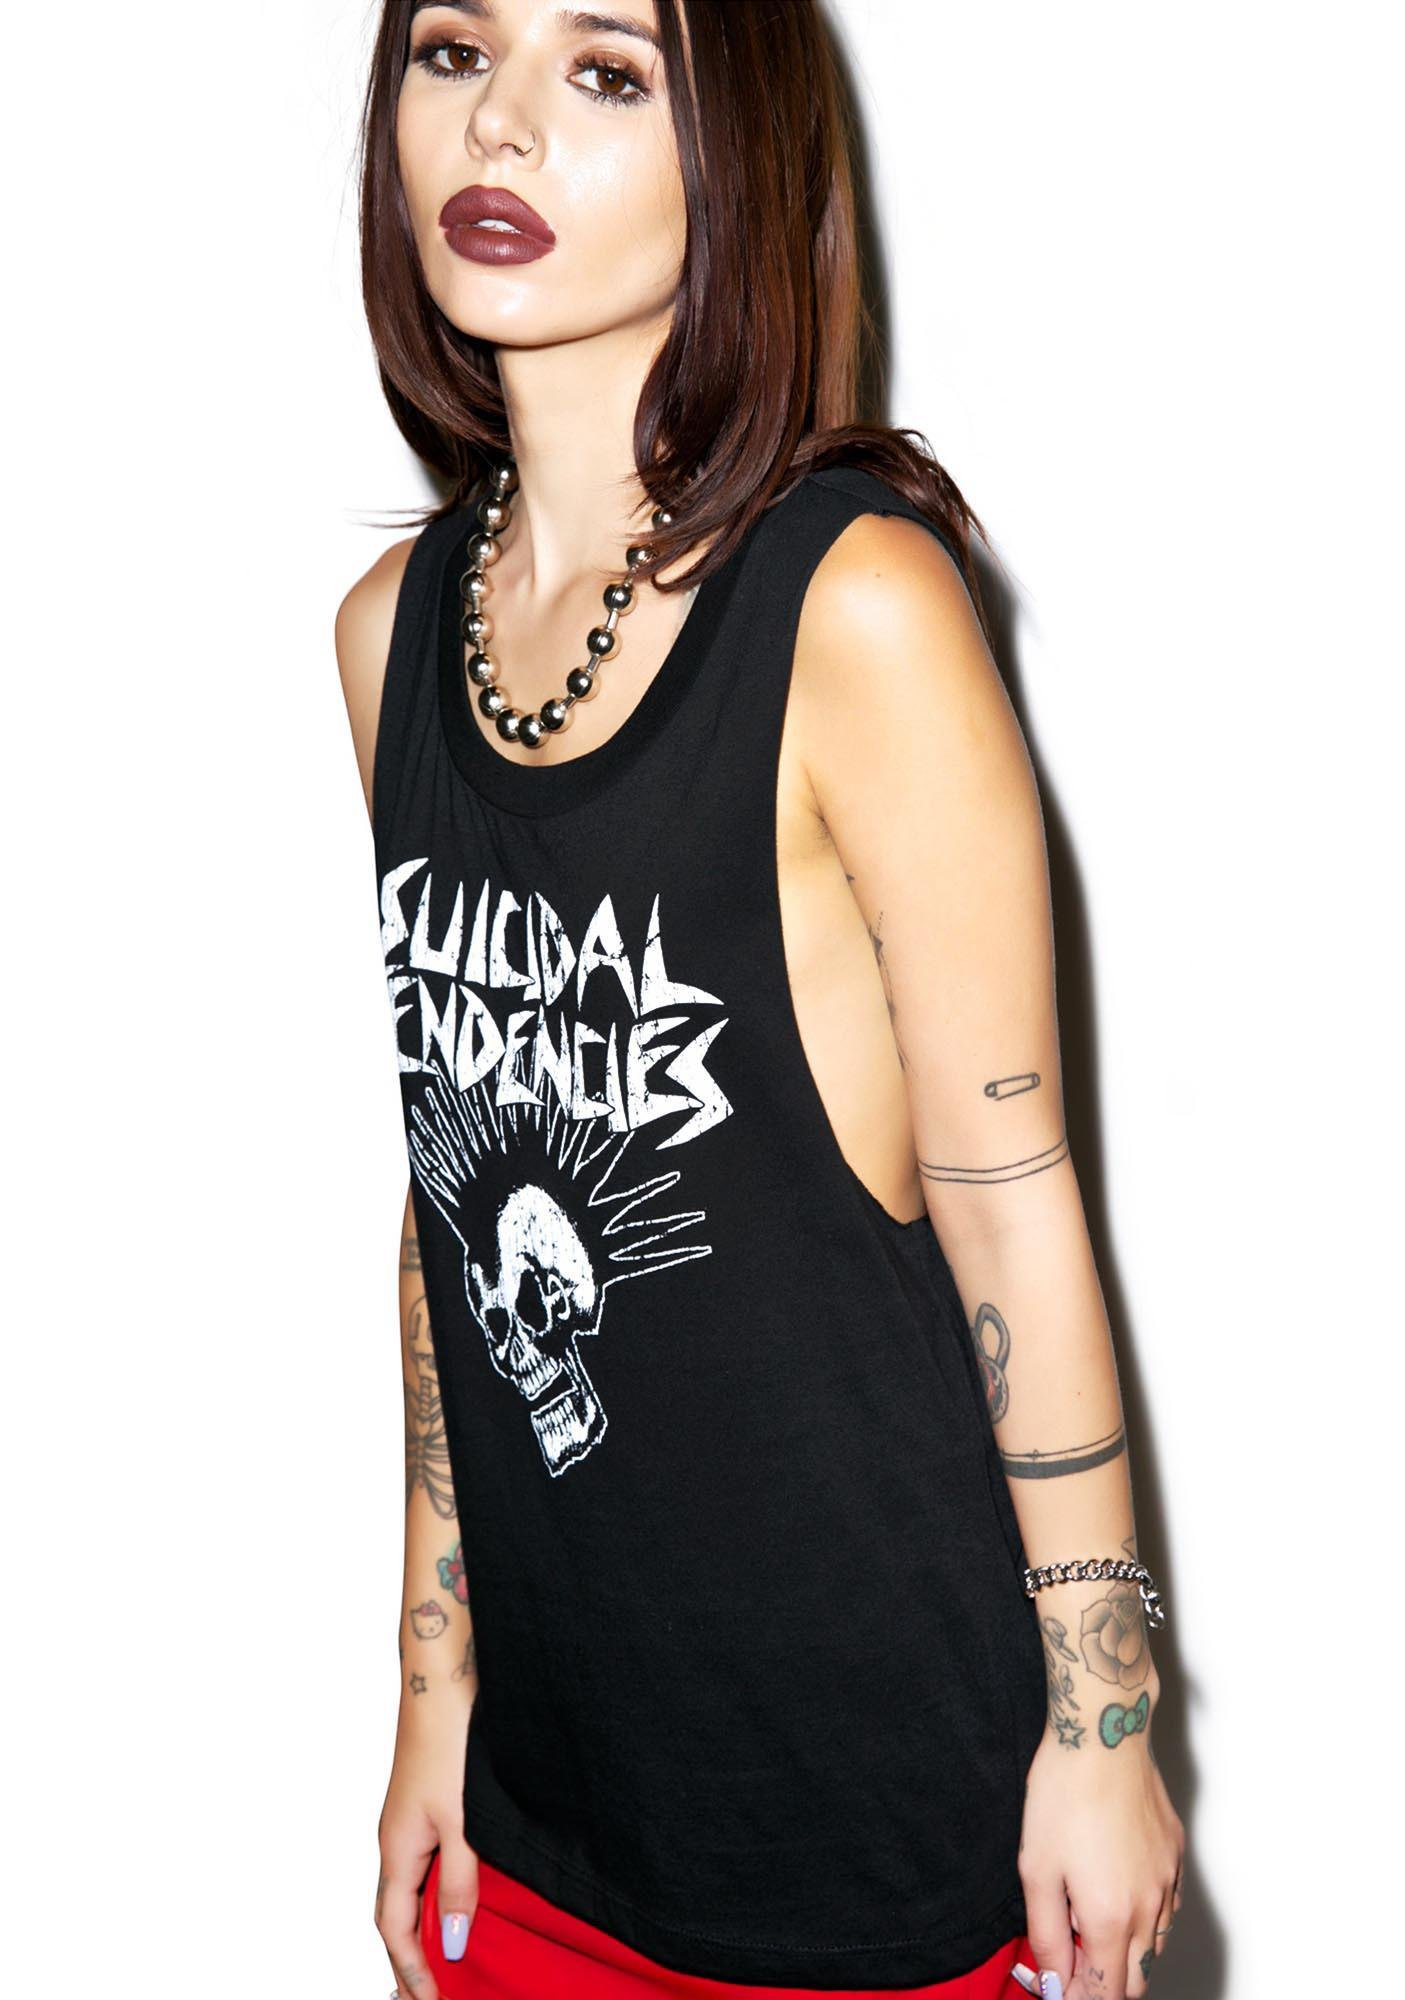 Suicidal Tendencies Mohawk Tank Top